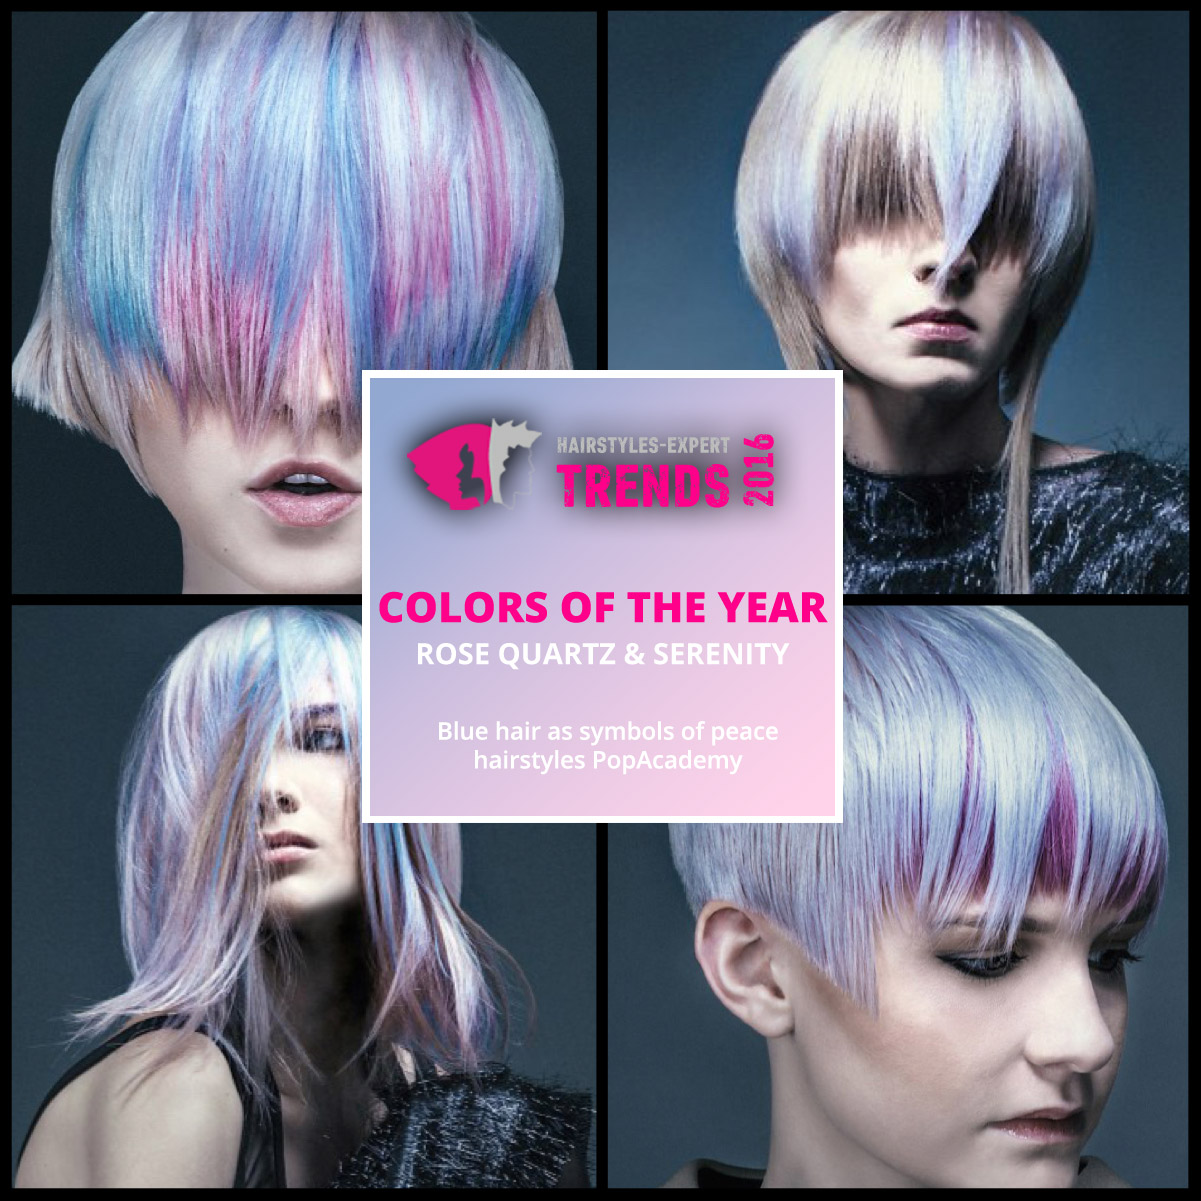 Rose quartz and serenity colors of the year 2016 in for Color of the year 2016